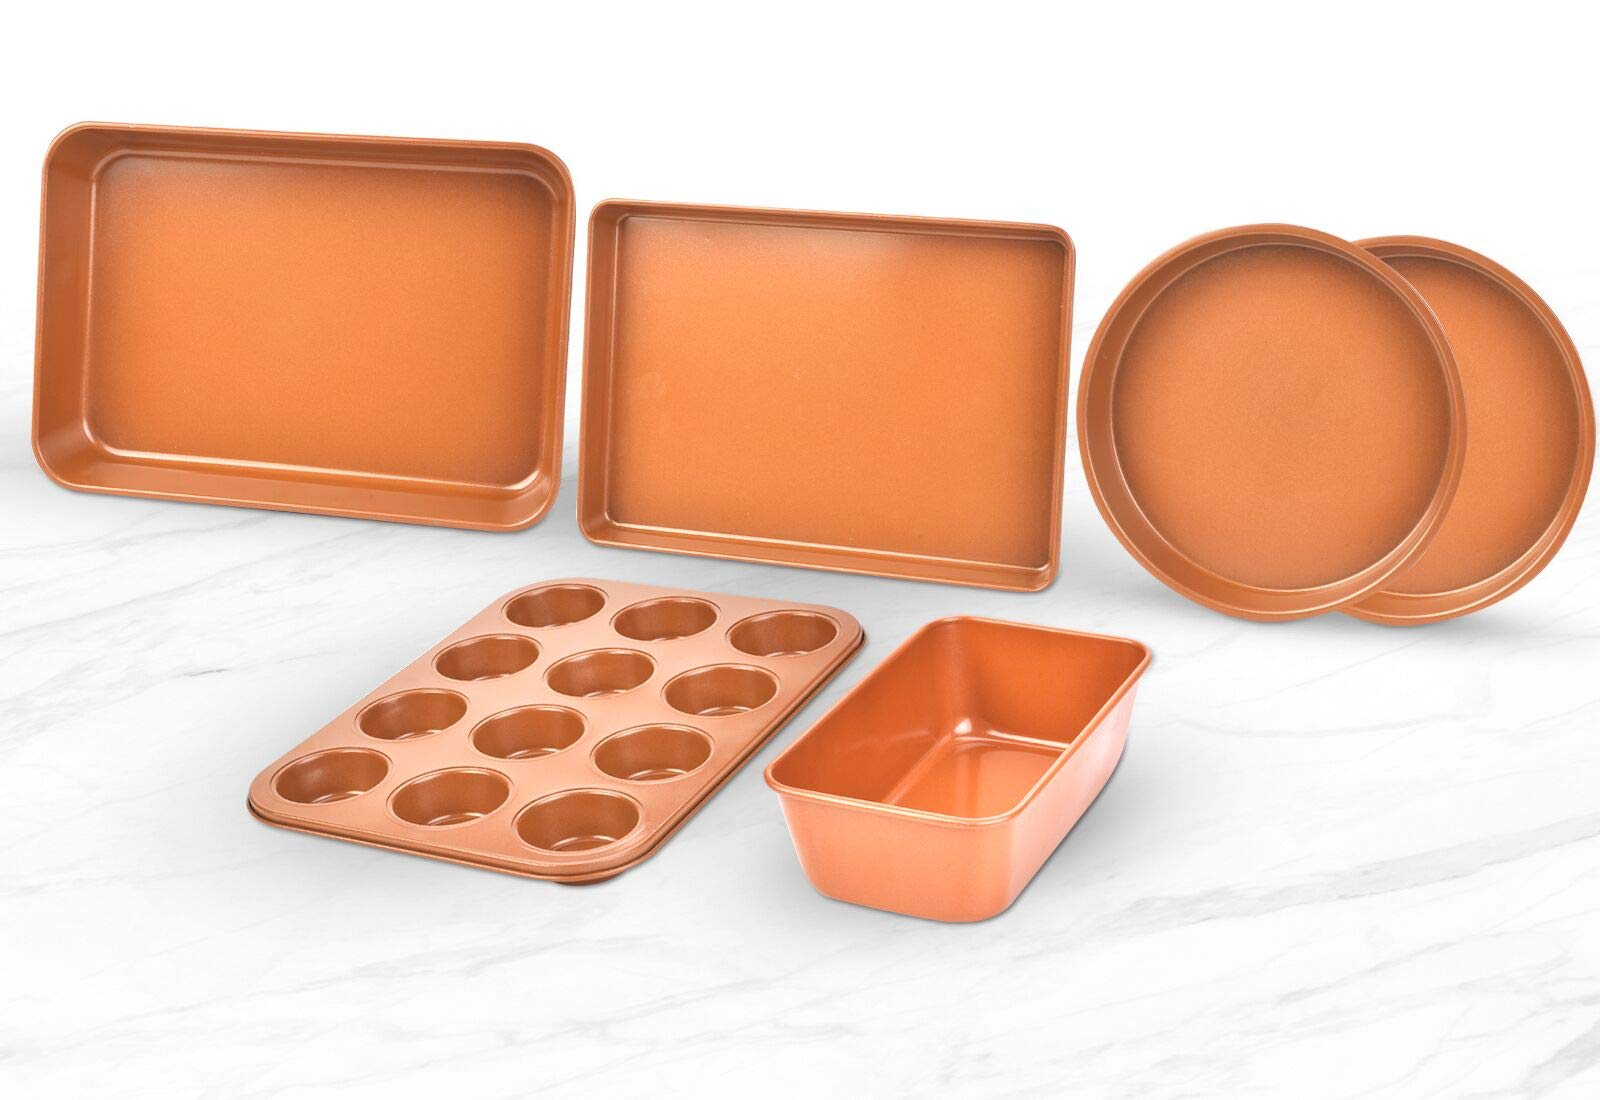 Bakeware Set 6 PCS Nonstick Copper Cooking Cake Pan Meatloaf Muffin Cups by GPM (Image #3)